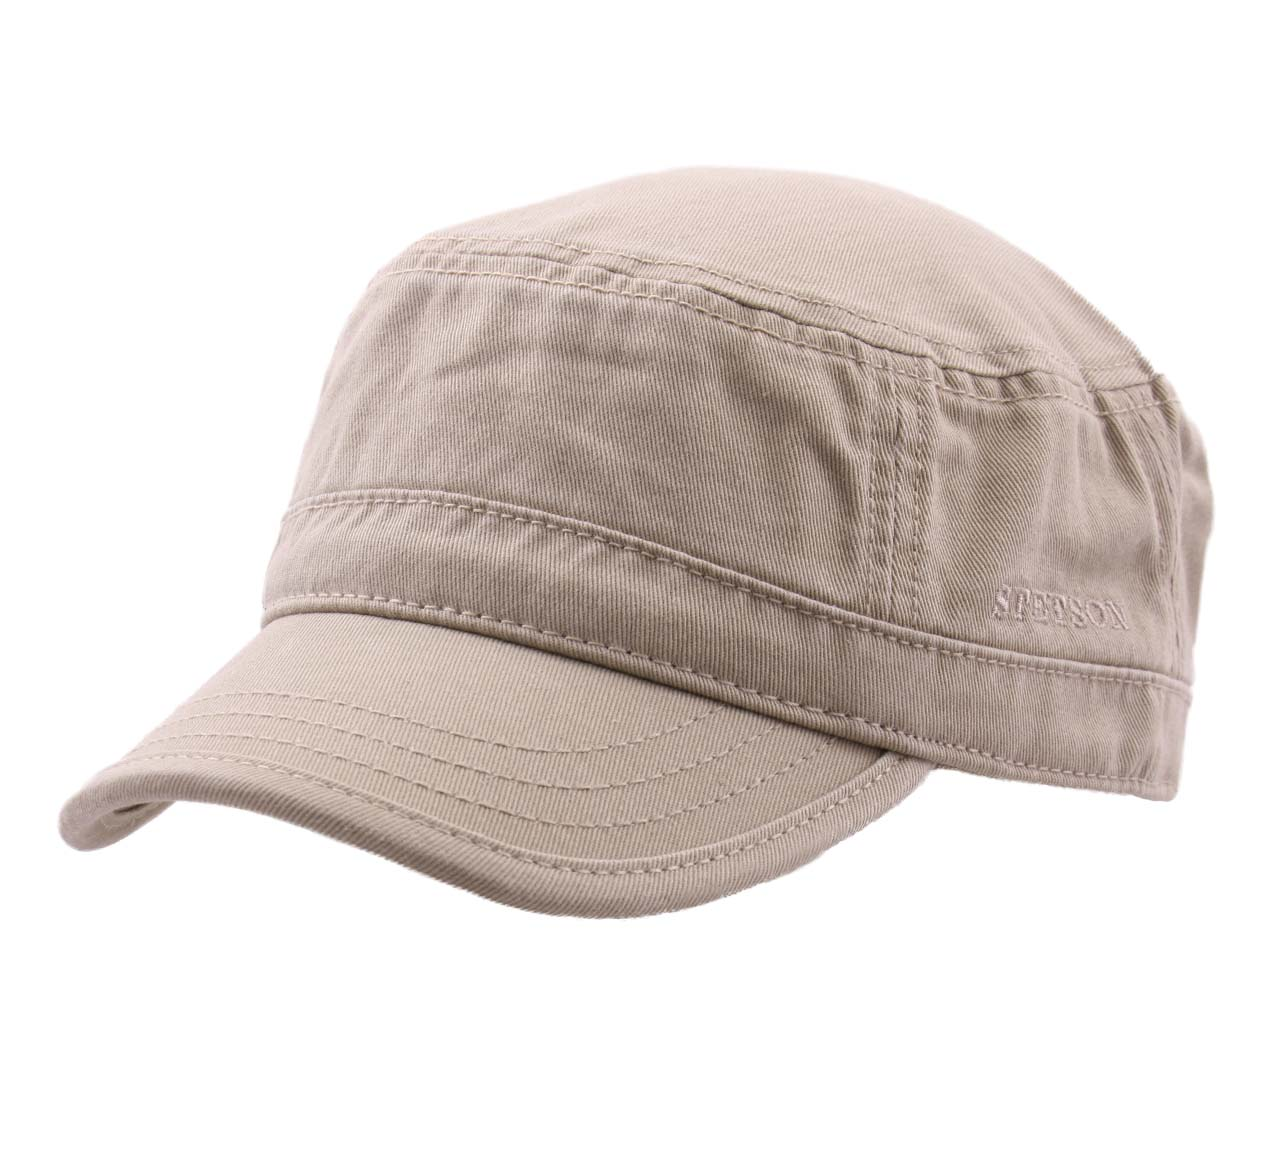 Casquette-army-stetson Army Cap Cotton Army Cap Cotton